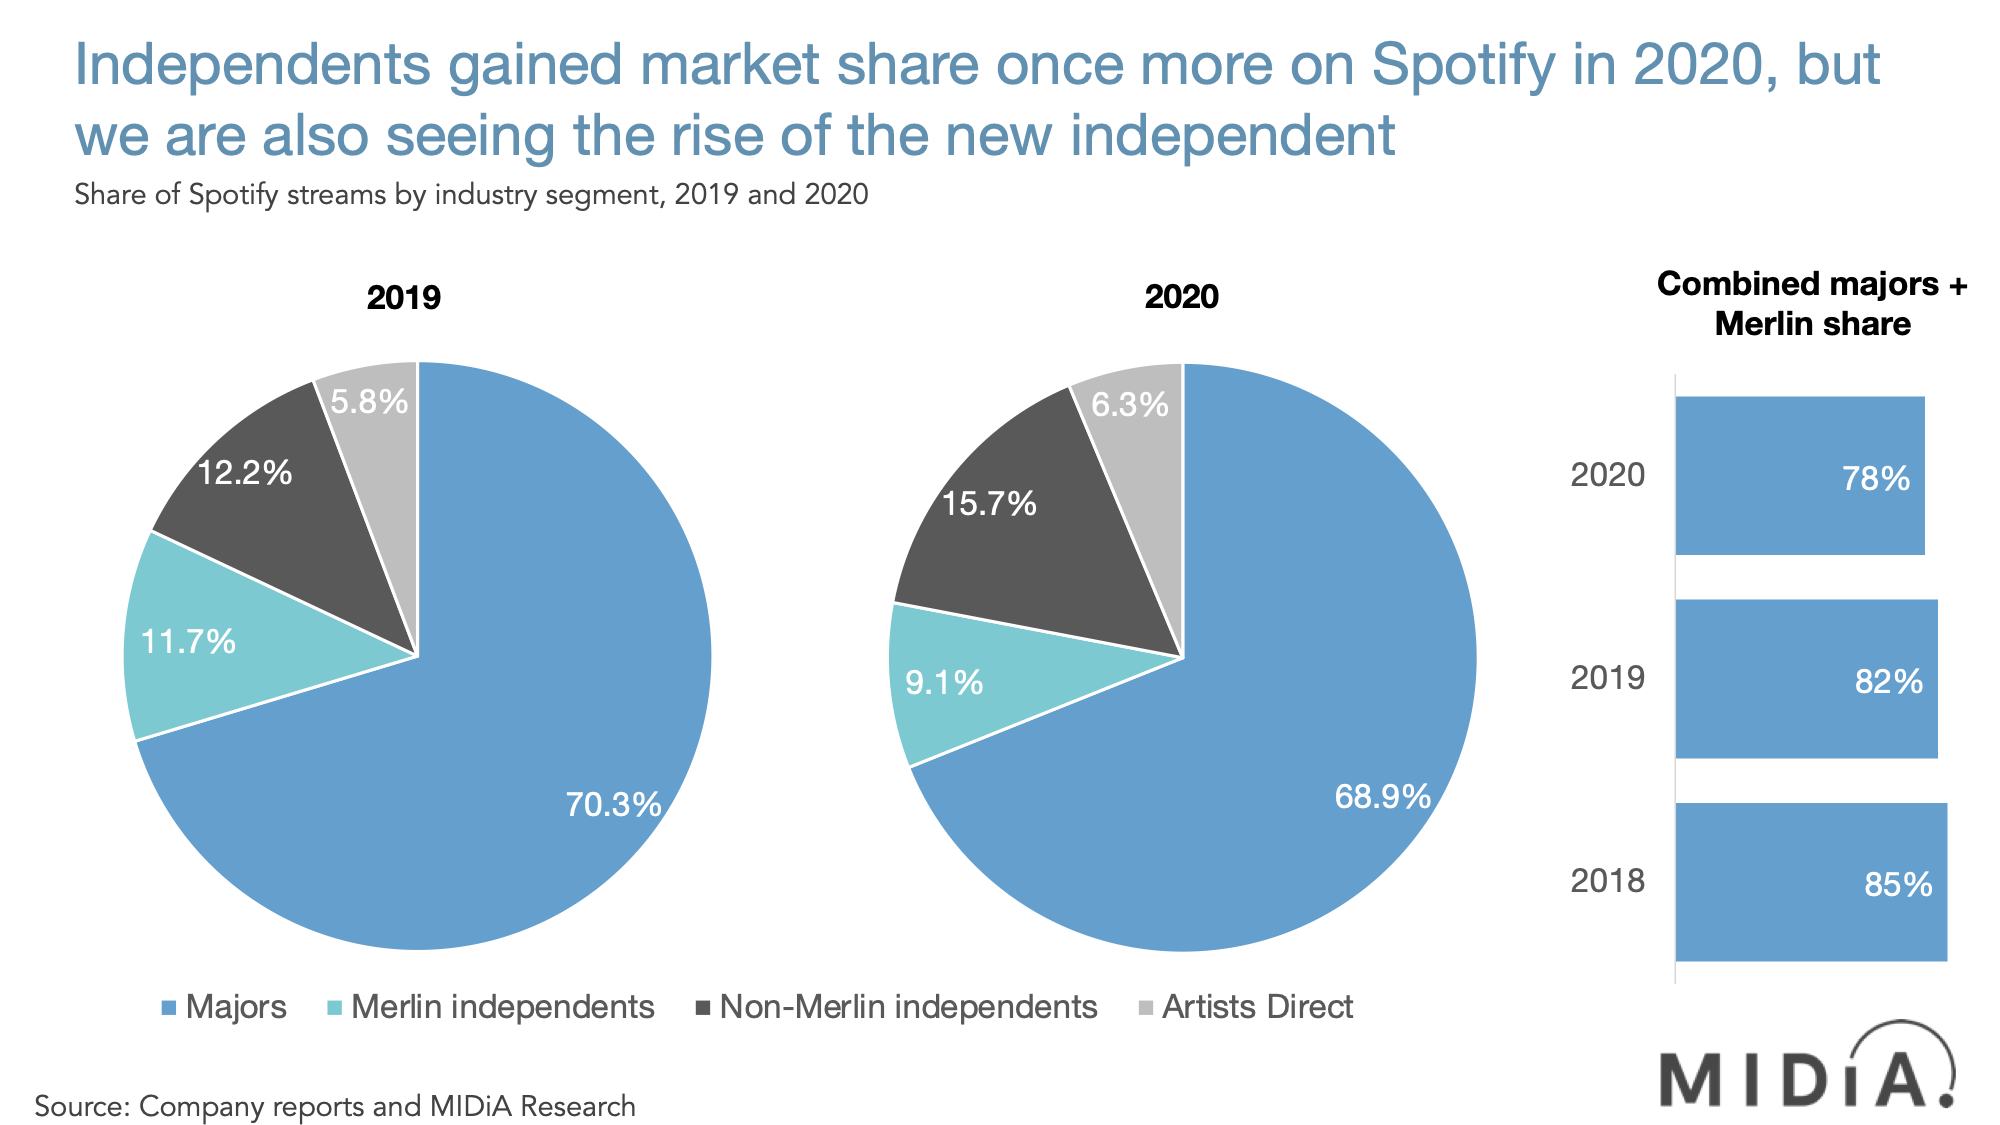 Smaller independents and artists direct grew fastest in 2020